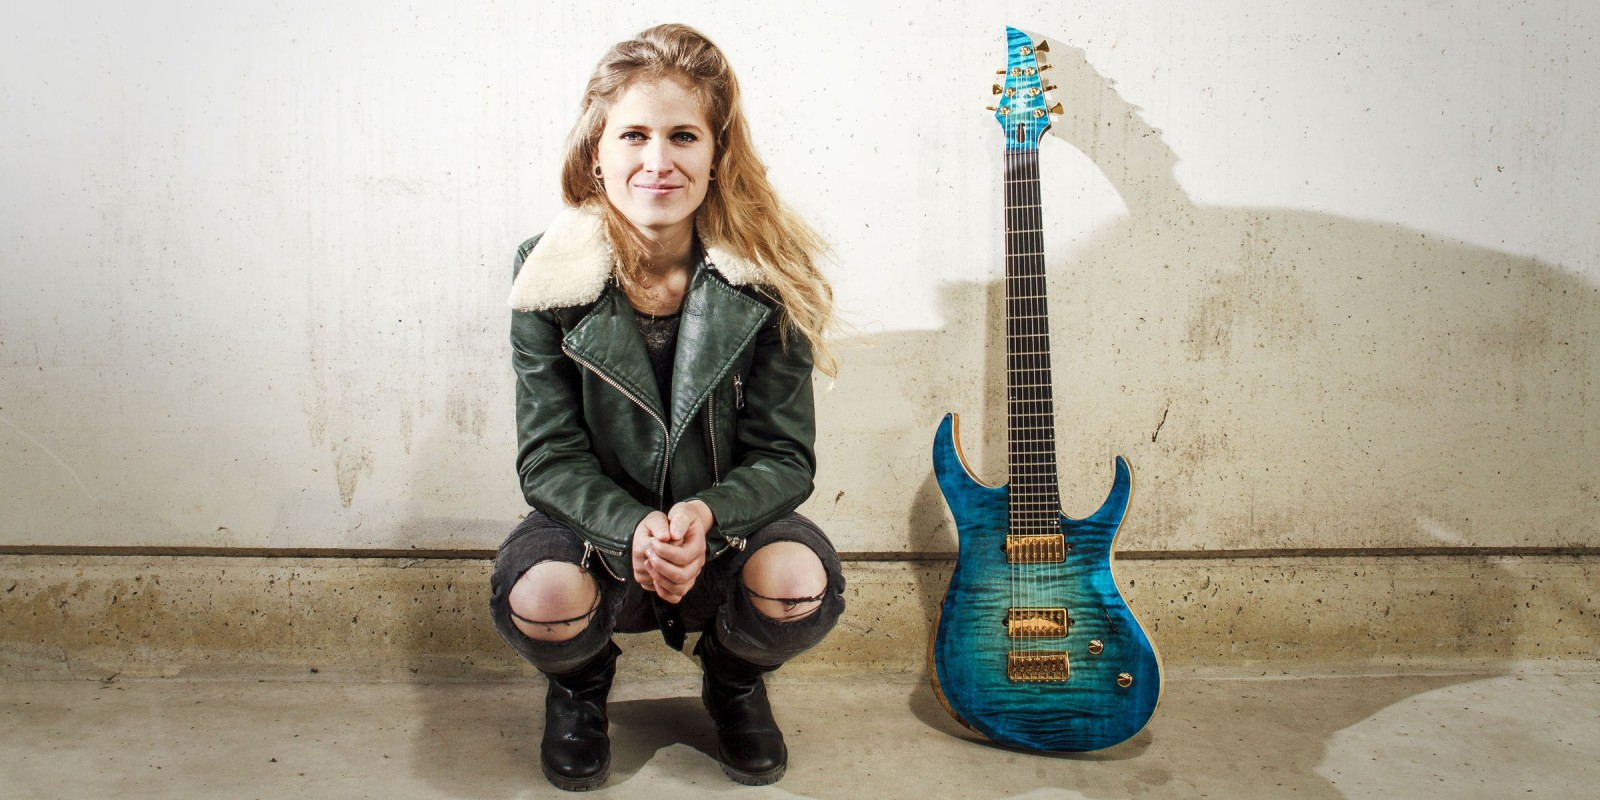 Portraits of Merel Bechtold to go along with her introduction as music ambassador for the Netherlands